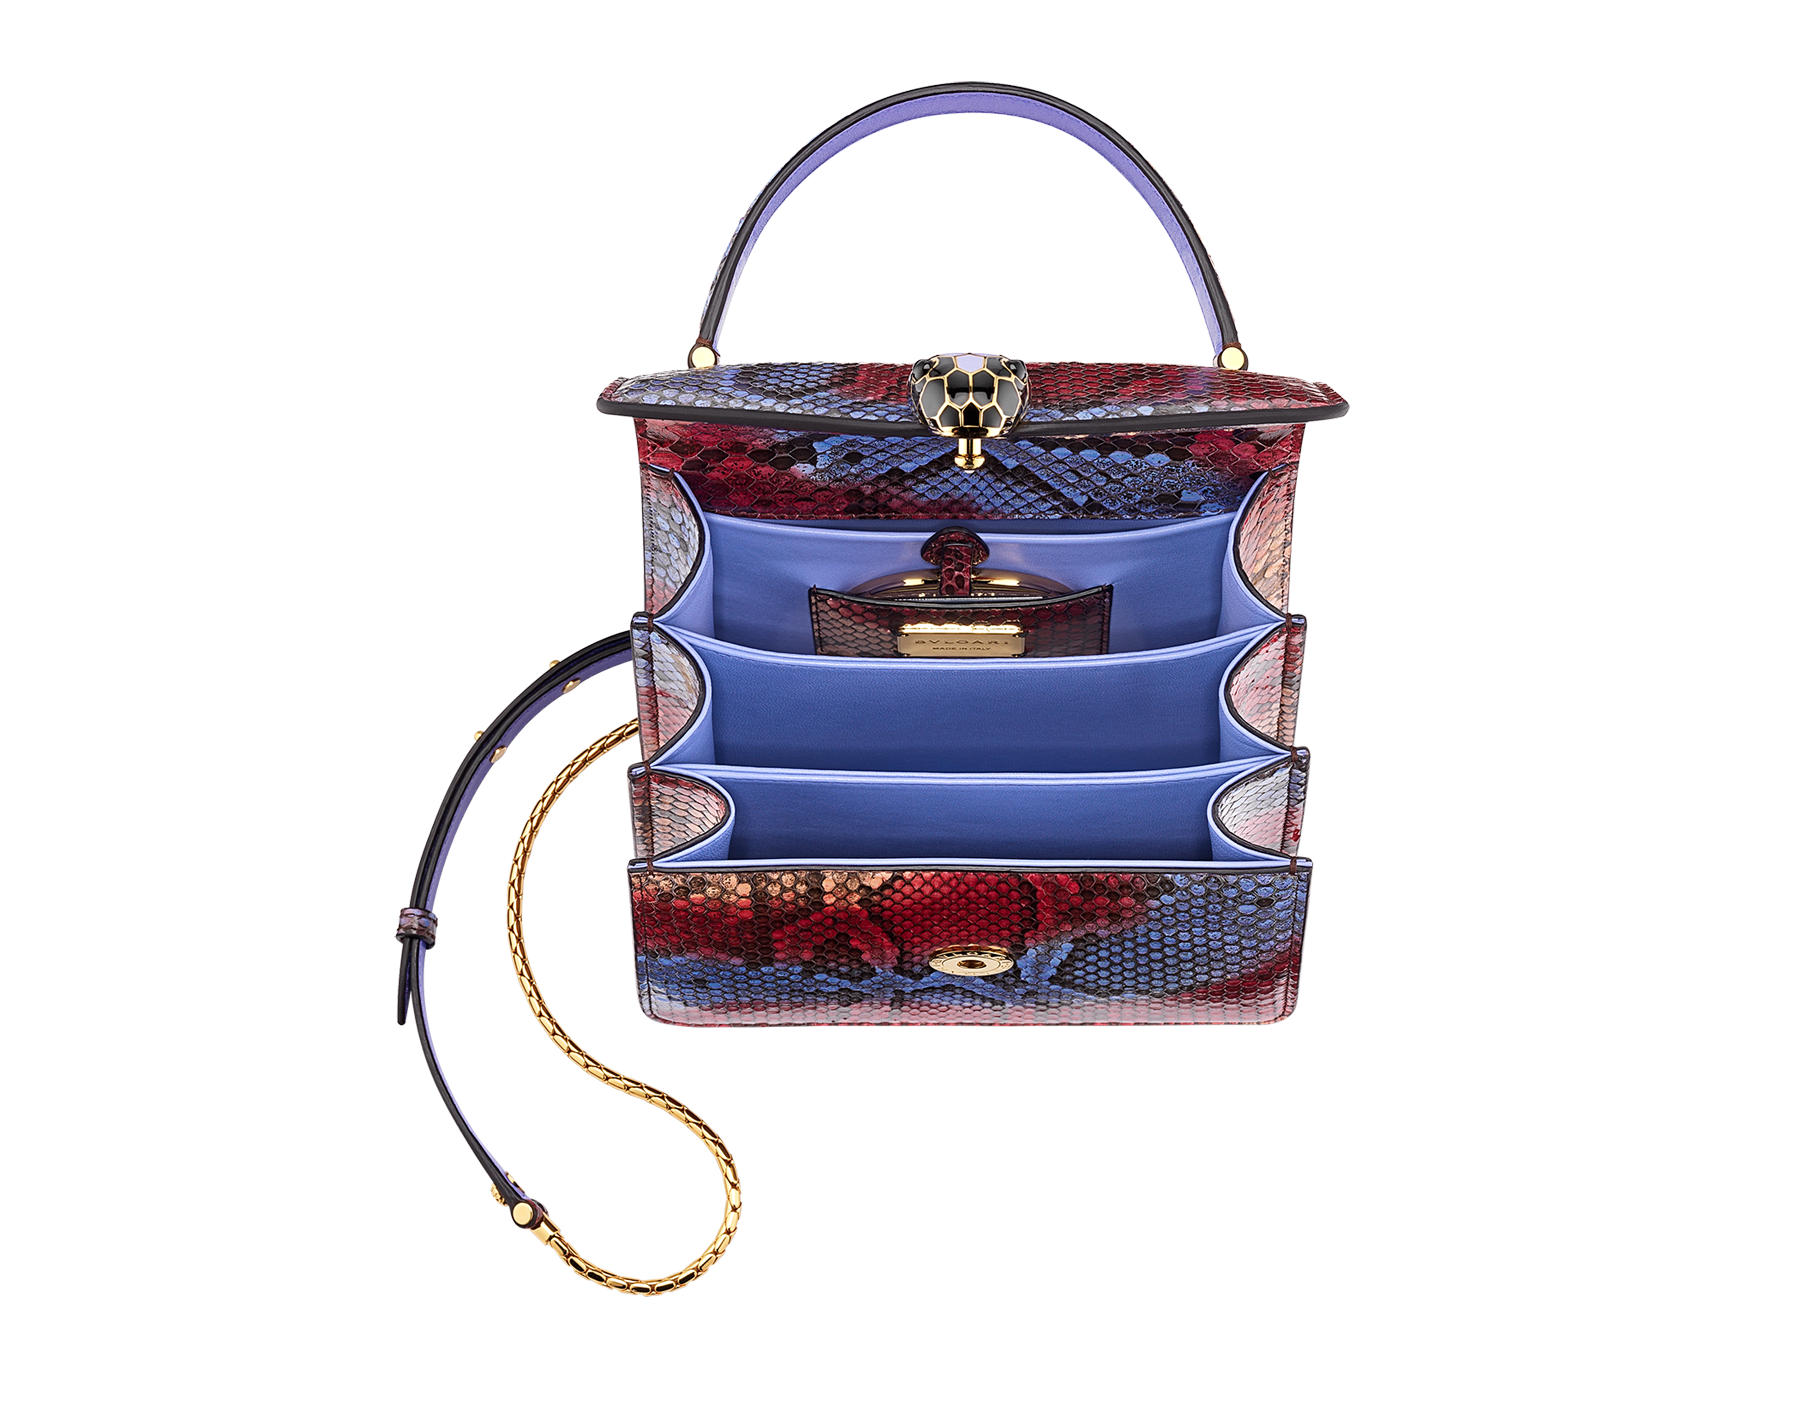 """""""Serpenti Forever """" top handle bag in multicolor """"Chimera"""" python skin with Lavander Amethyst lilac nappa leather internal lining. Tempting snakehead closure in gold plated brass enriched with black and Lavander lilac enamel, and black onyx eyes 290579 image 2"""